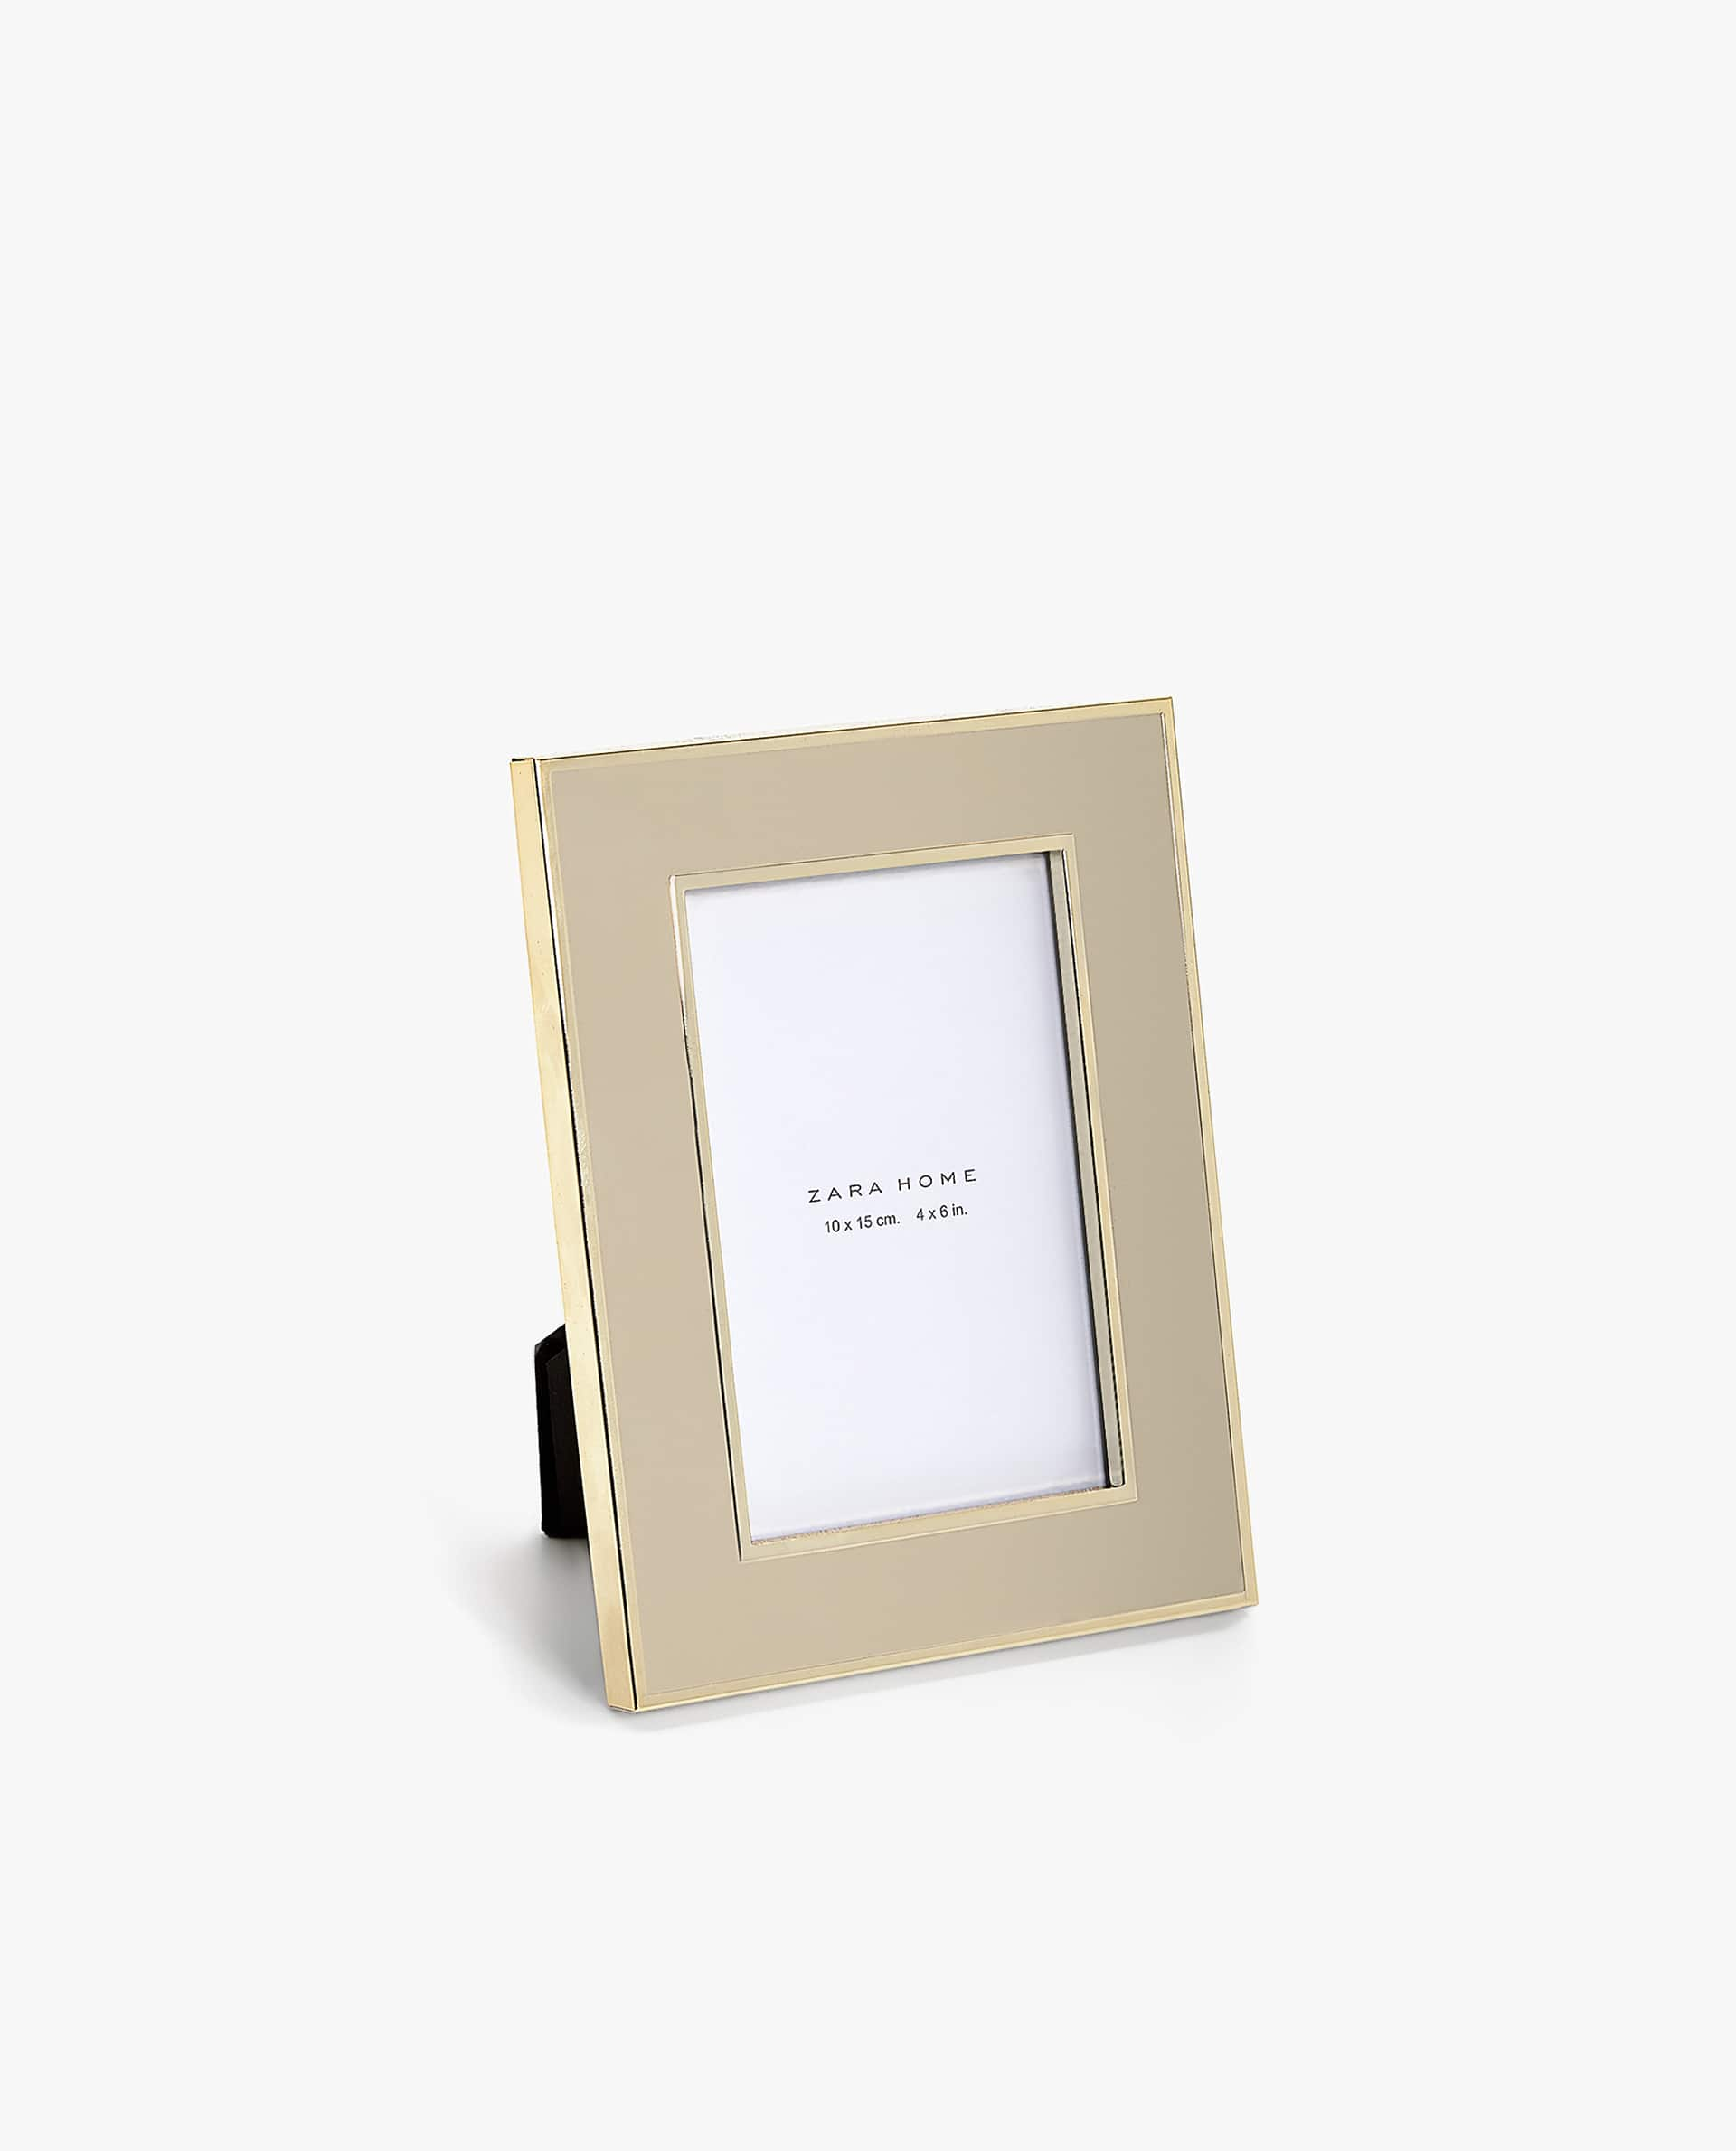 ENAMELLED FRAME WITH GOLD BORDER - PHOTO SIZE 4x6 in. - PHOTO FRAMES ...